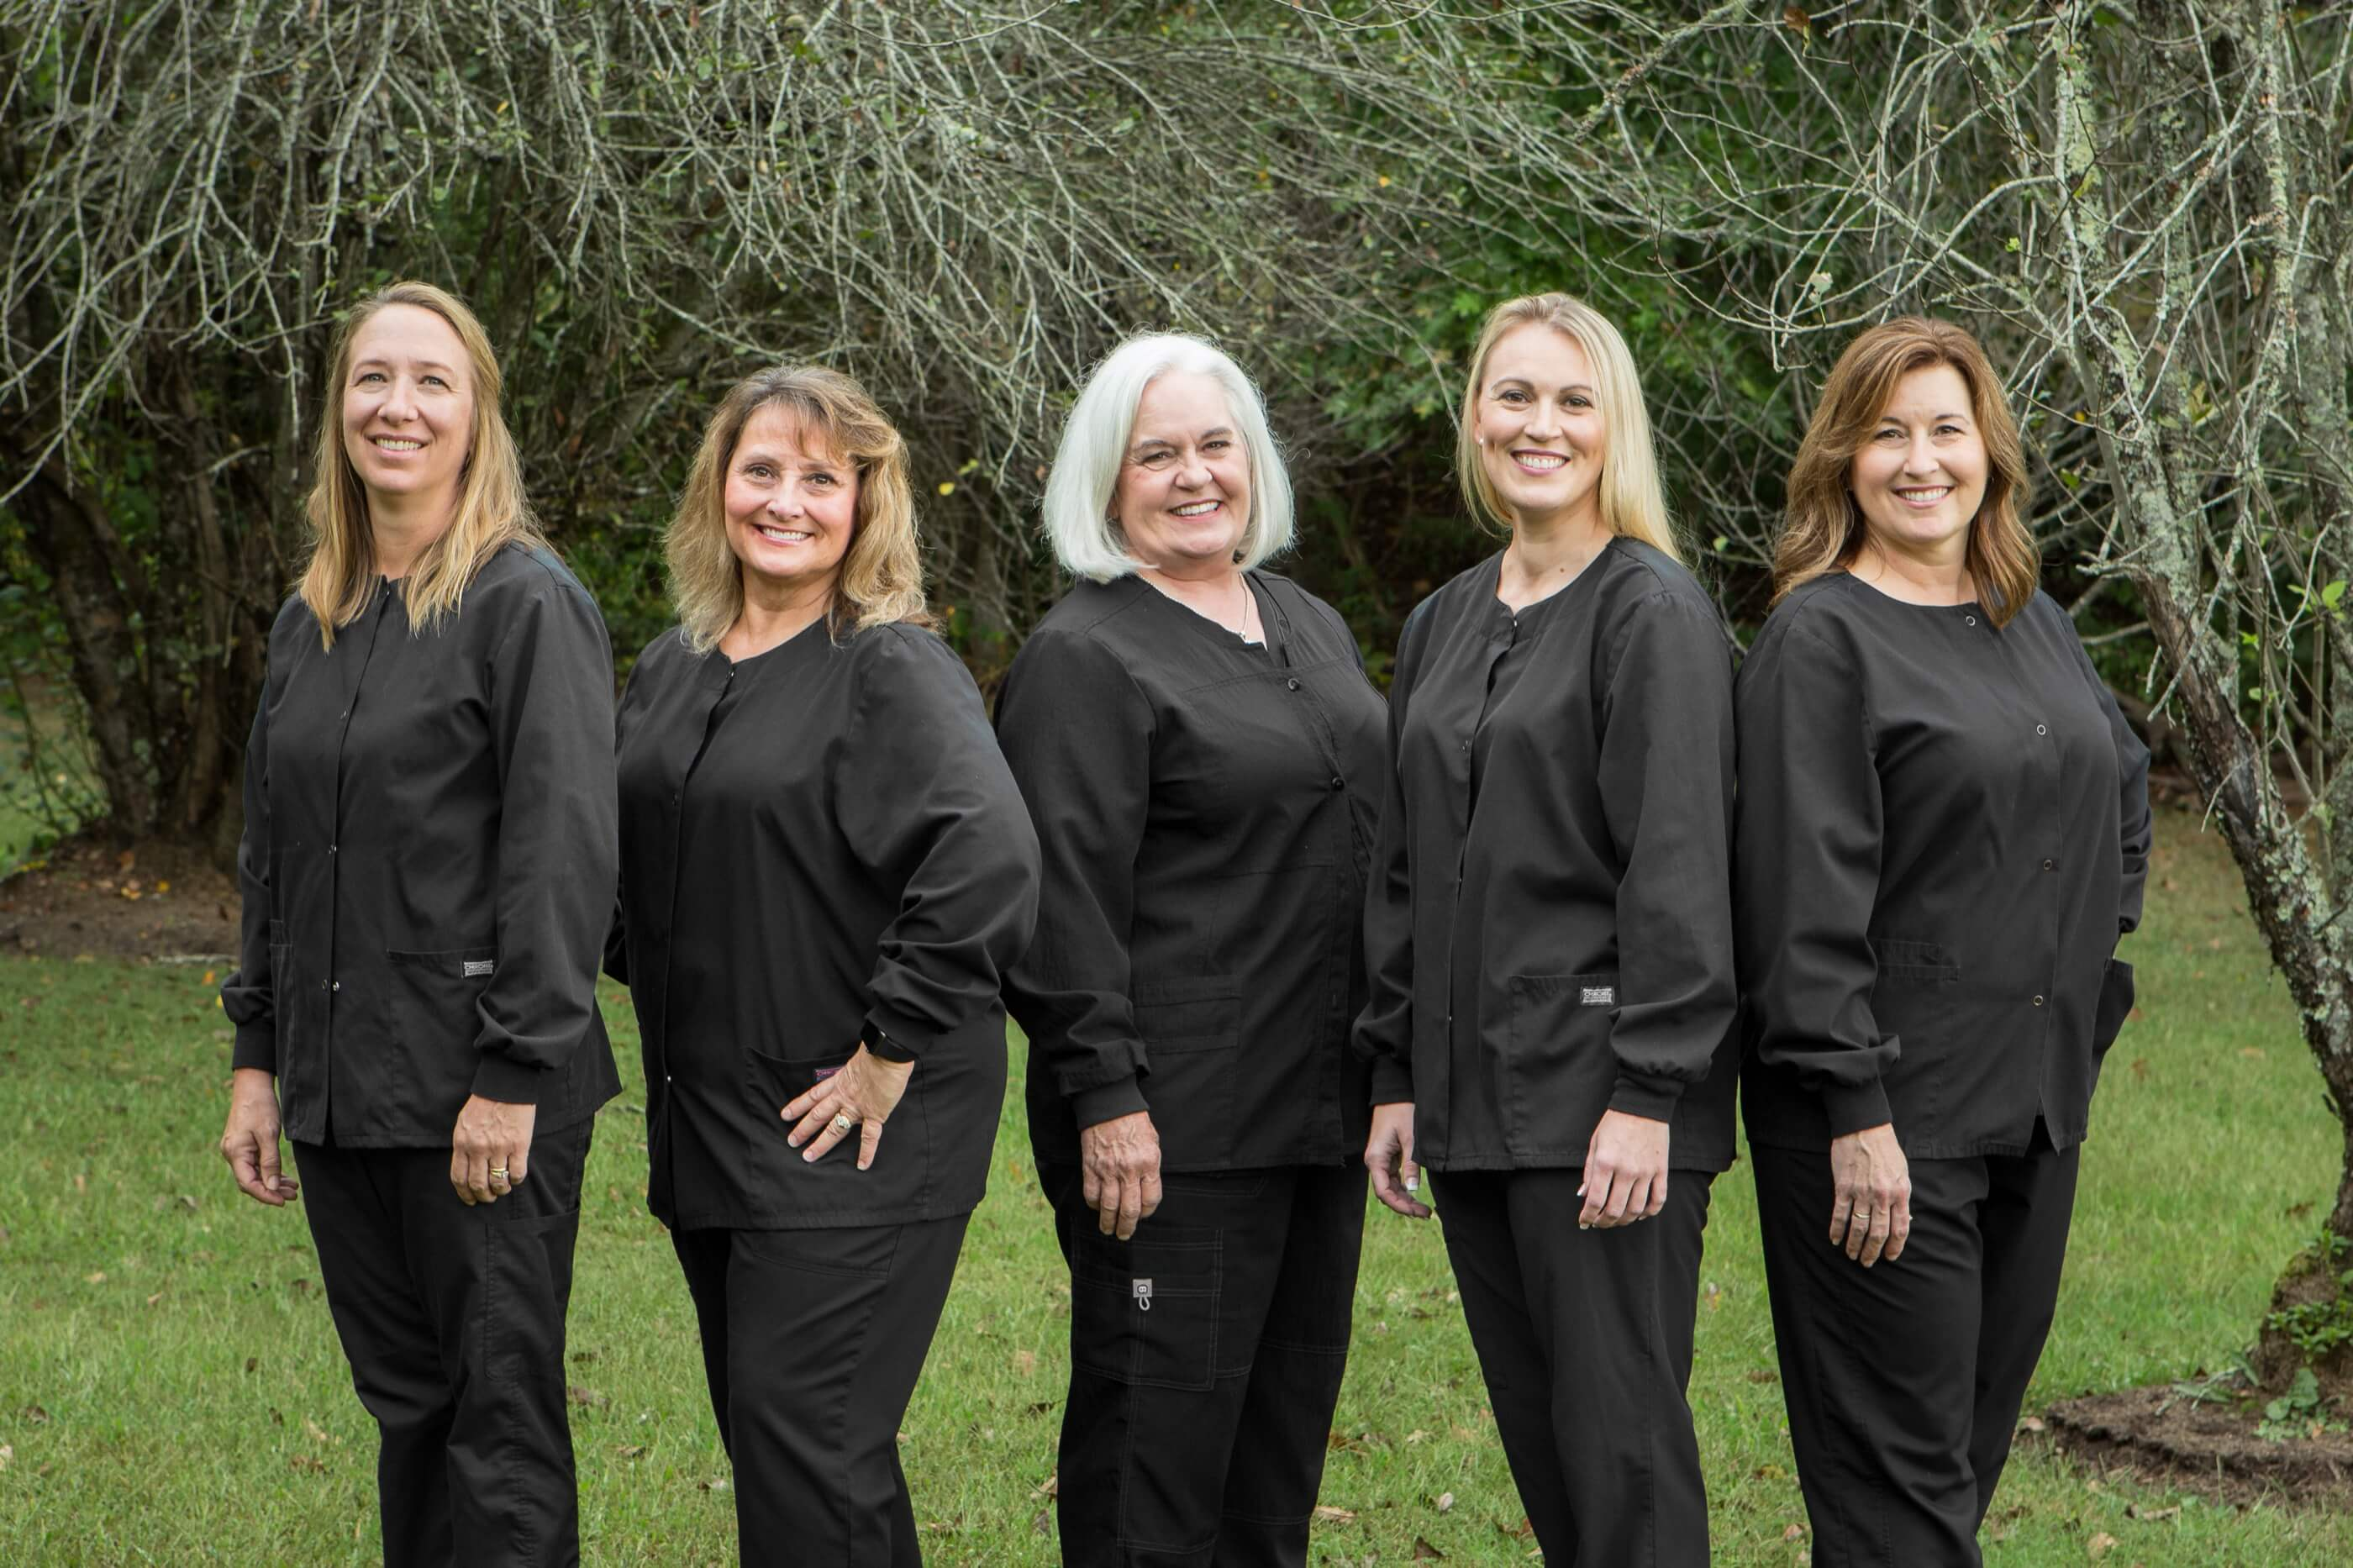 The Hygienist Team of Baldwell and Guffey Family Dentistry Standing Together